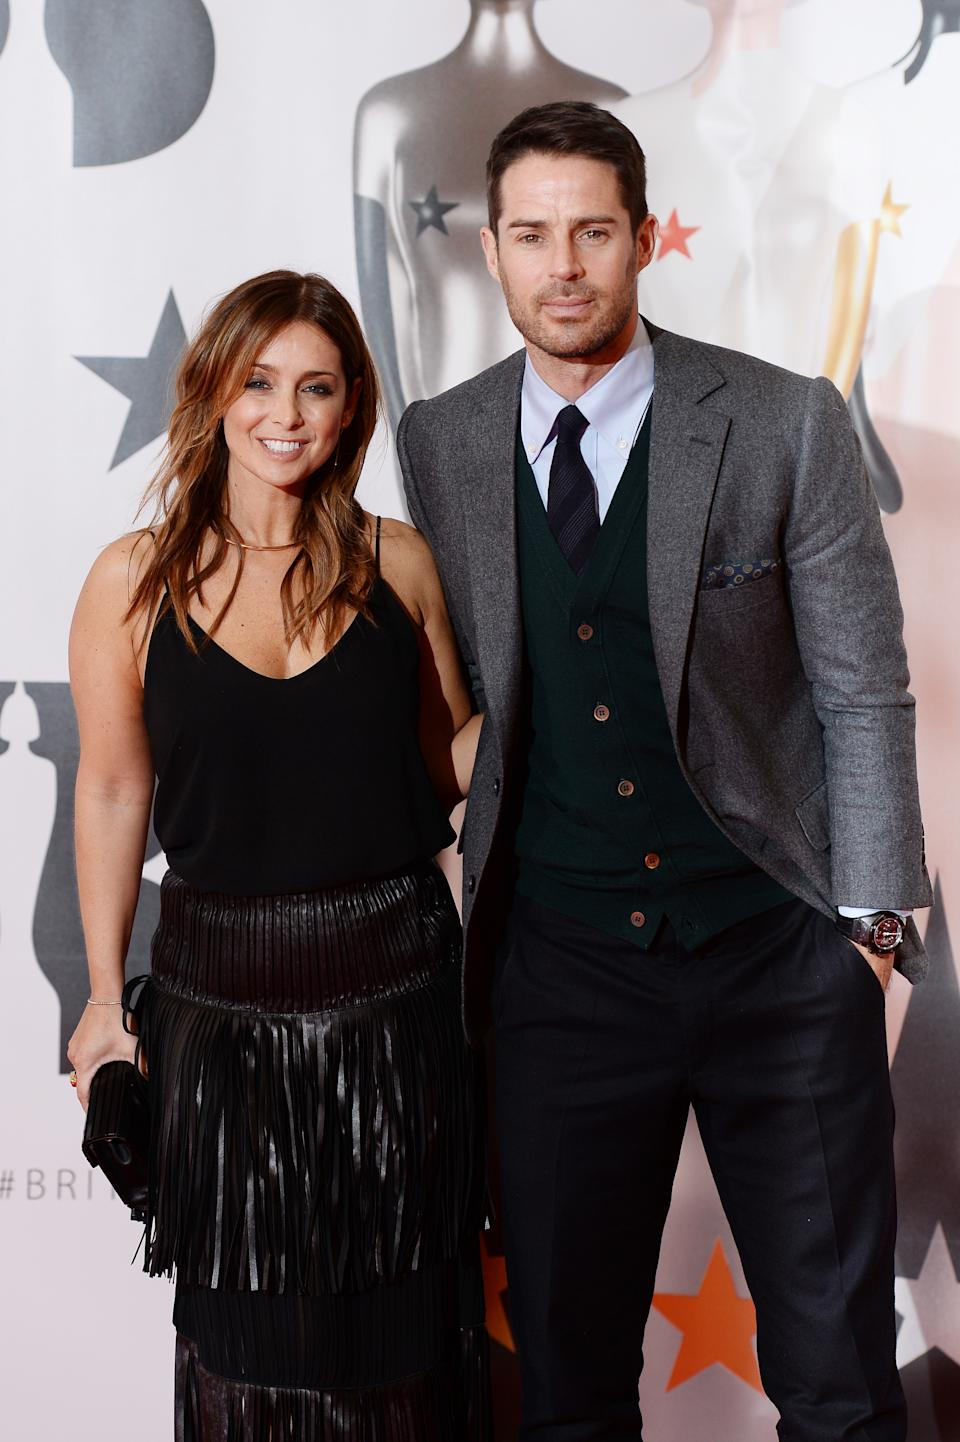 Louise Redknapp and Jamie Redknapp attend the BRIT Awards 2016 at The O2 Arena on February 24, 2016 in London, England.  (Photo by Dave J Hogan/Getty Images)